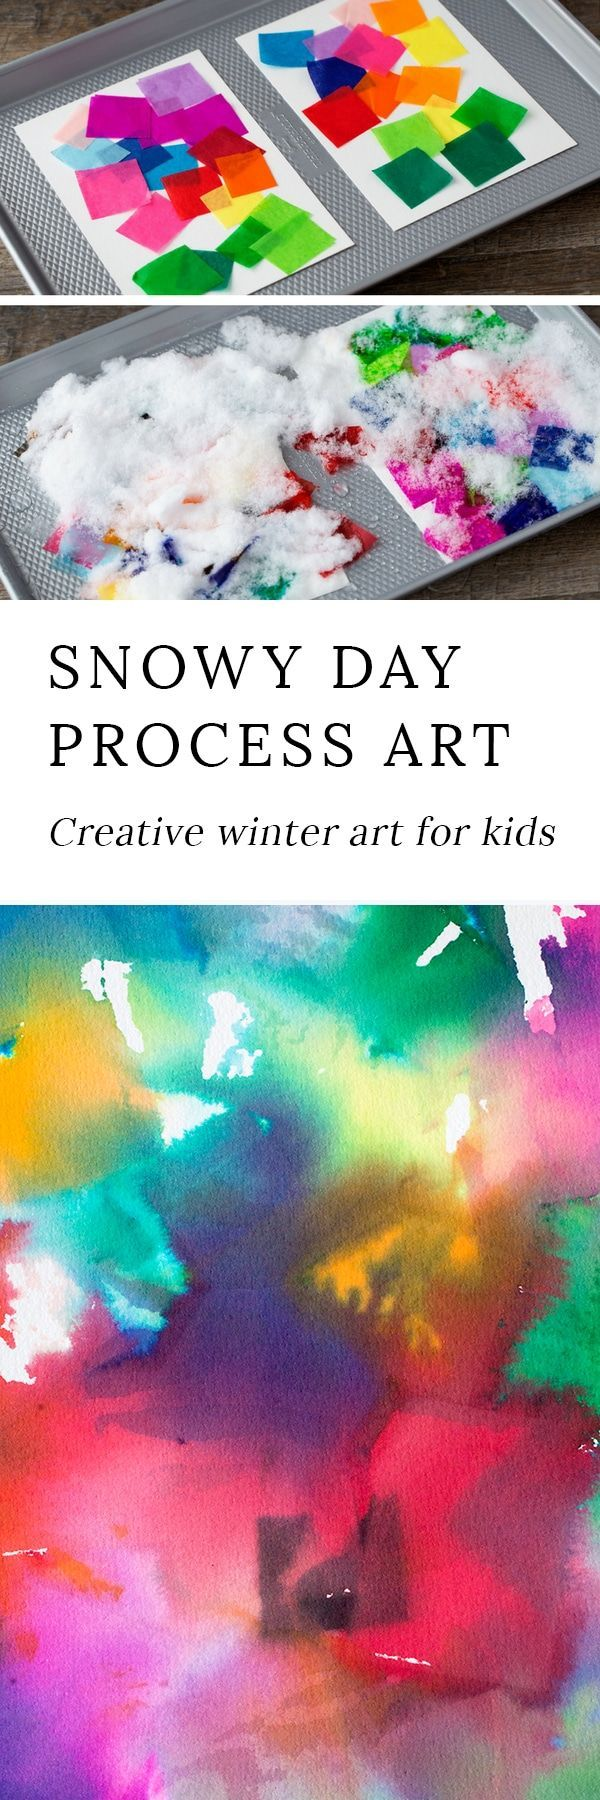 Snowy Day Process Art Creative Winter For Kids